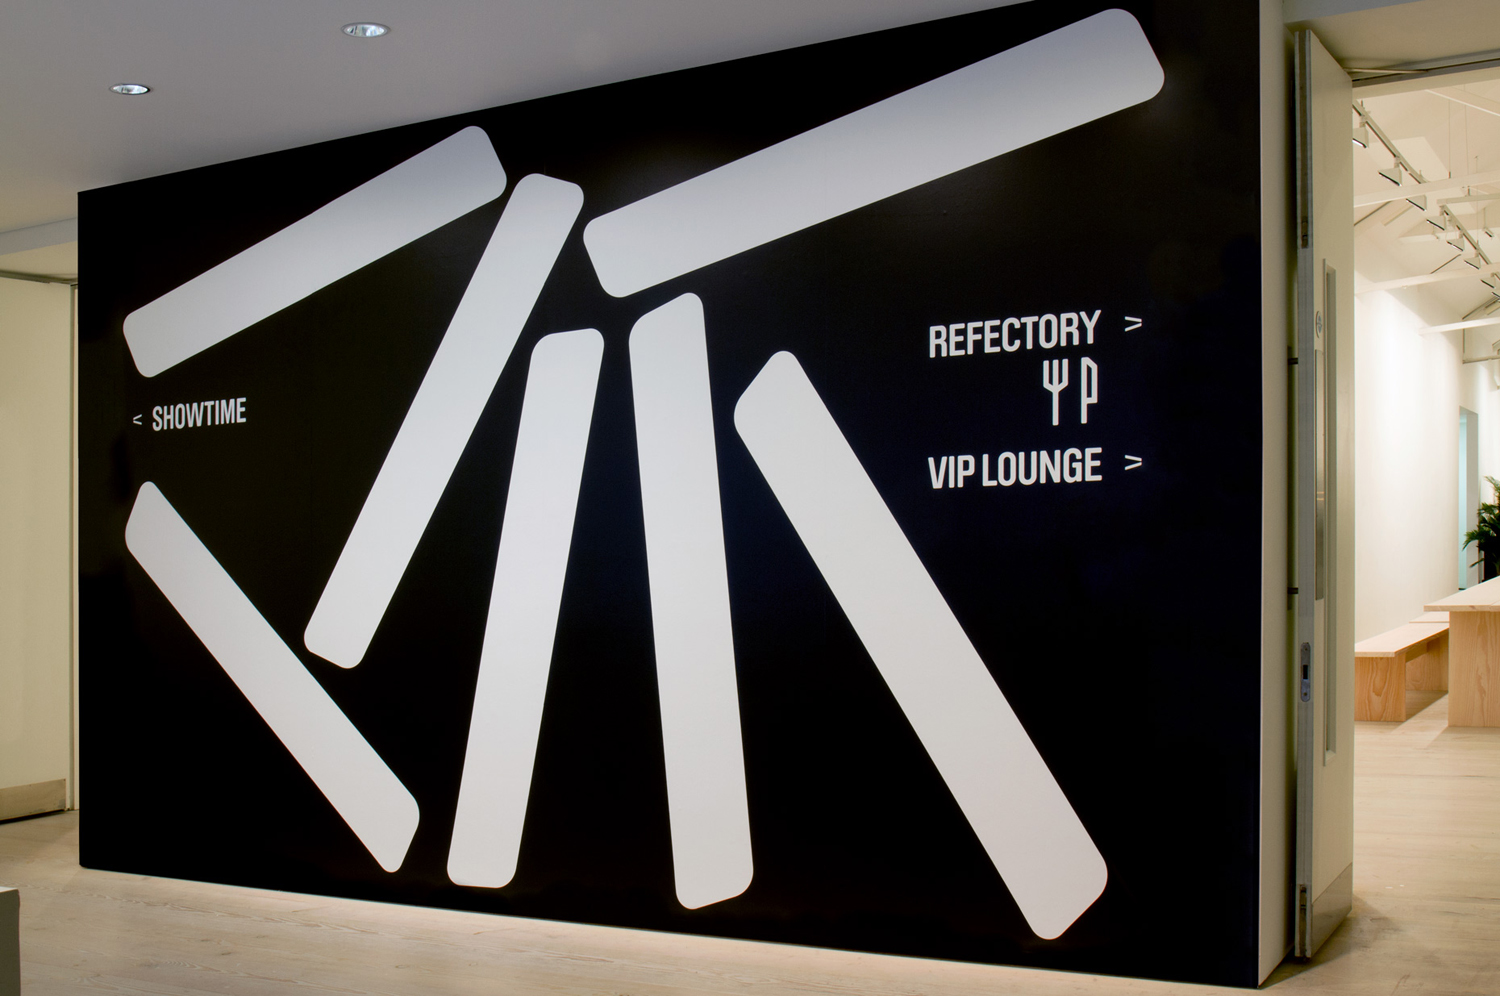 Iconography, wayfinding and supergraphics for contemporary international art fair Collect, designed by Spin, London, UK